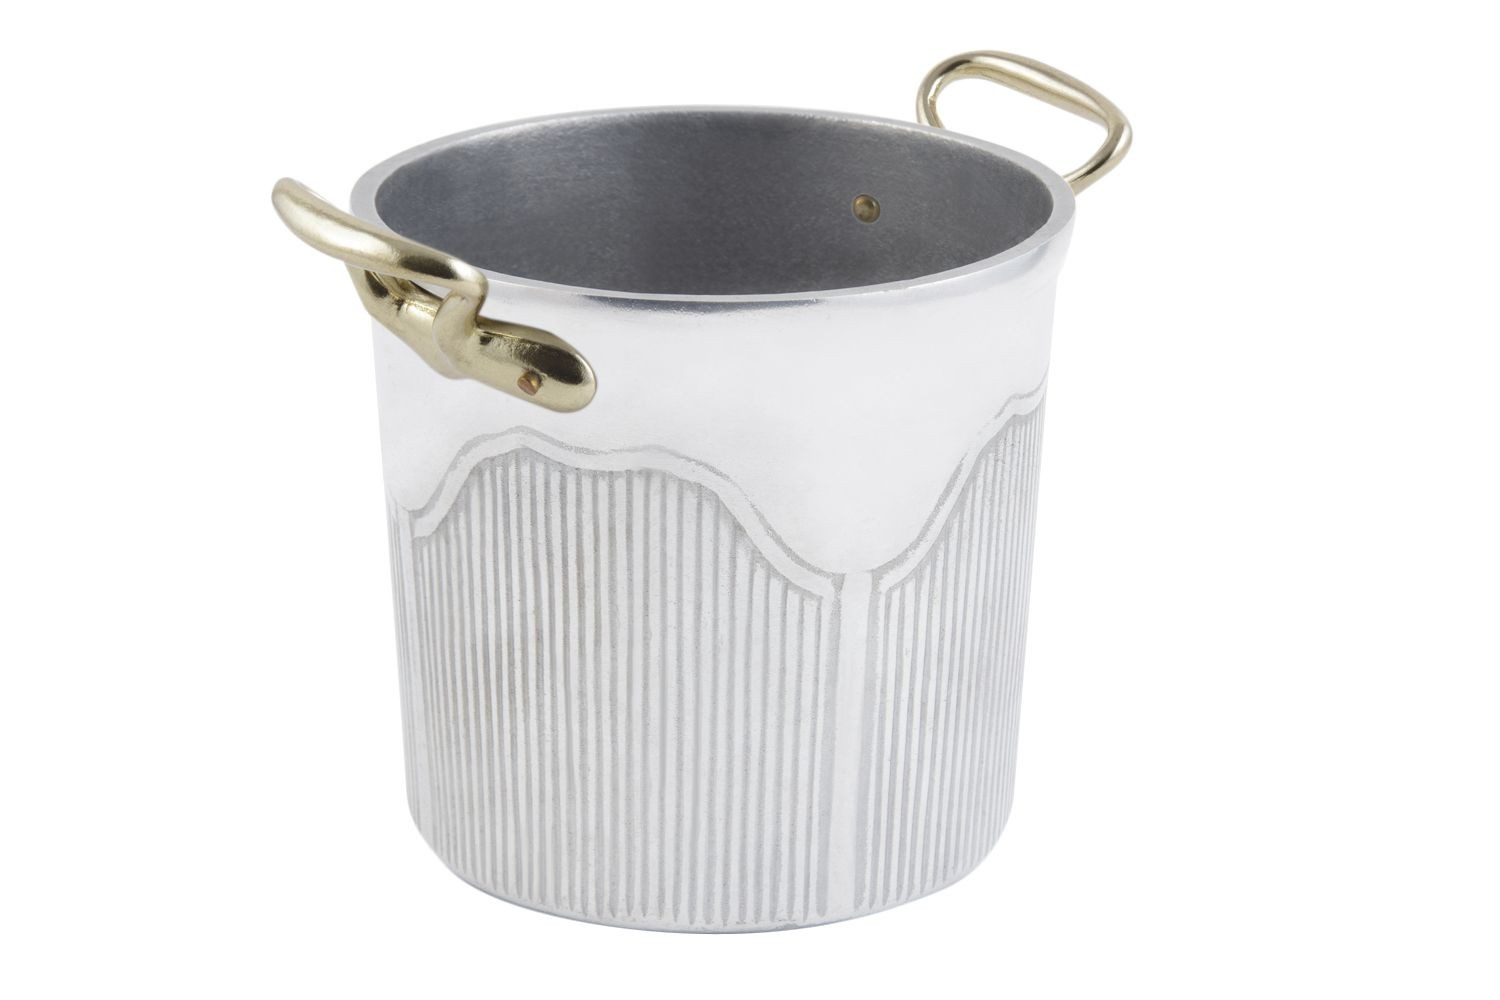 Bon Chef 4036P Champagne Ice Bucket, Pewter Glo 3 1/2 Qt.